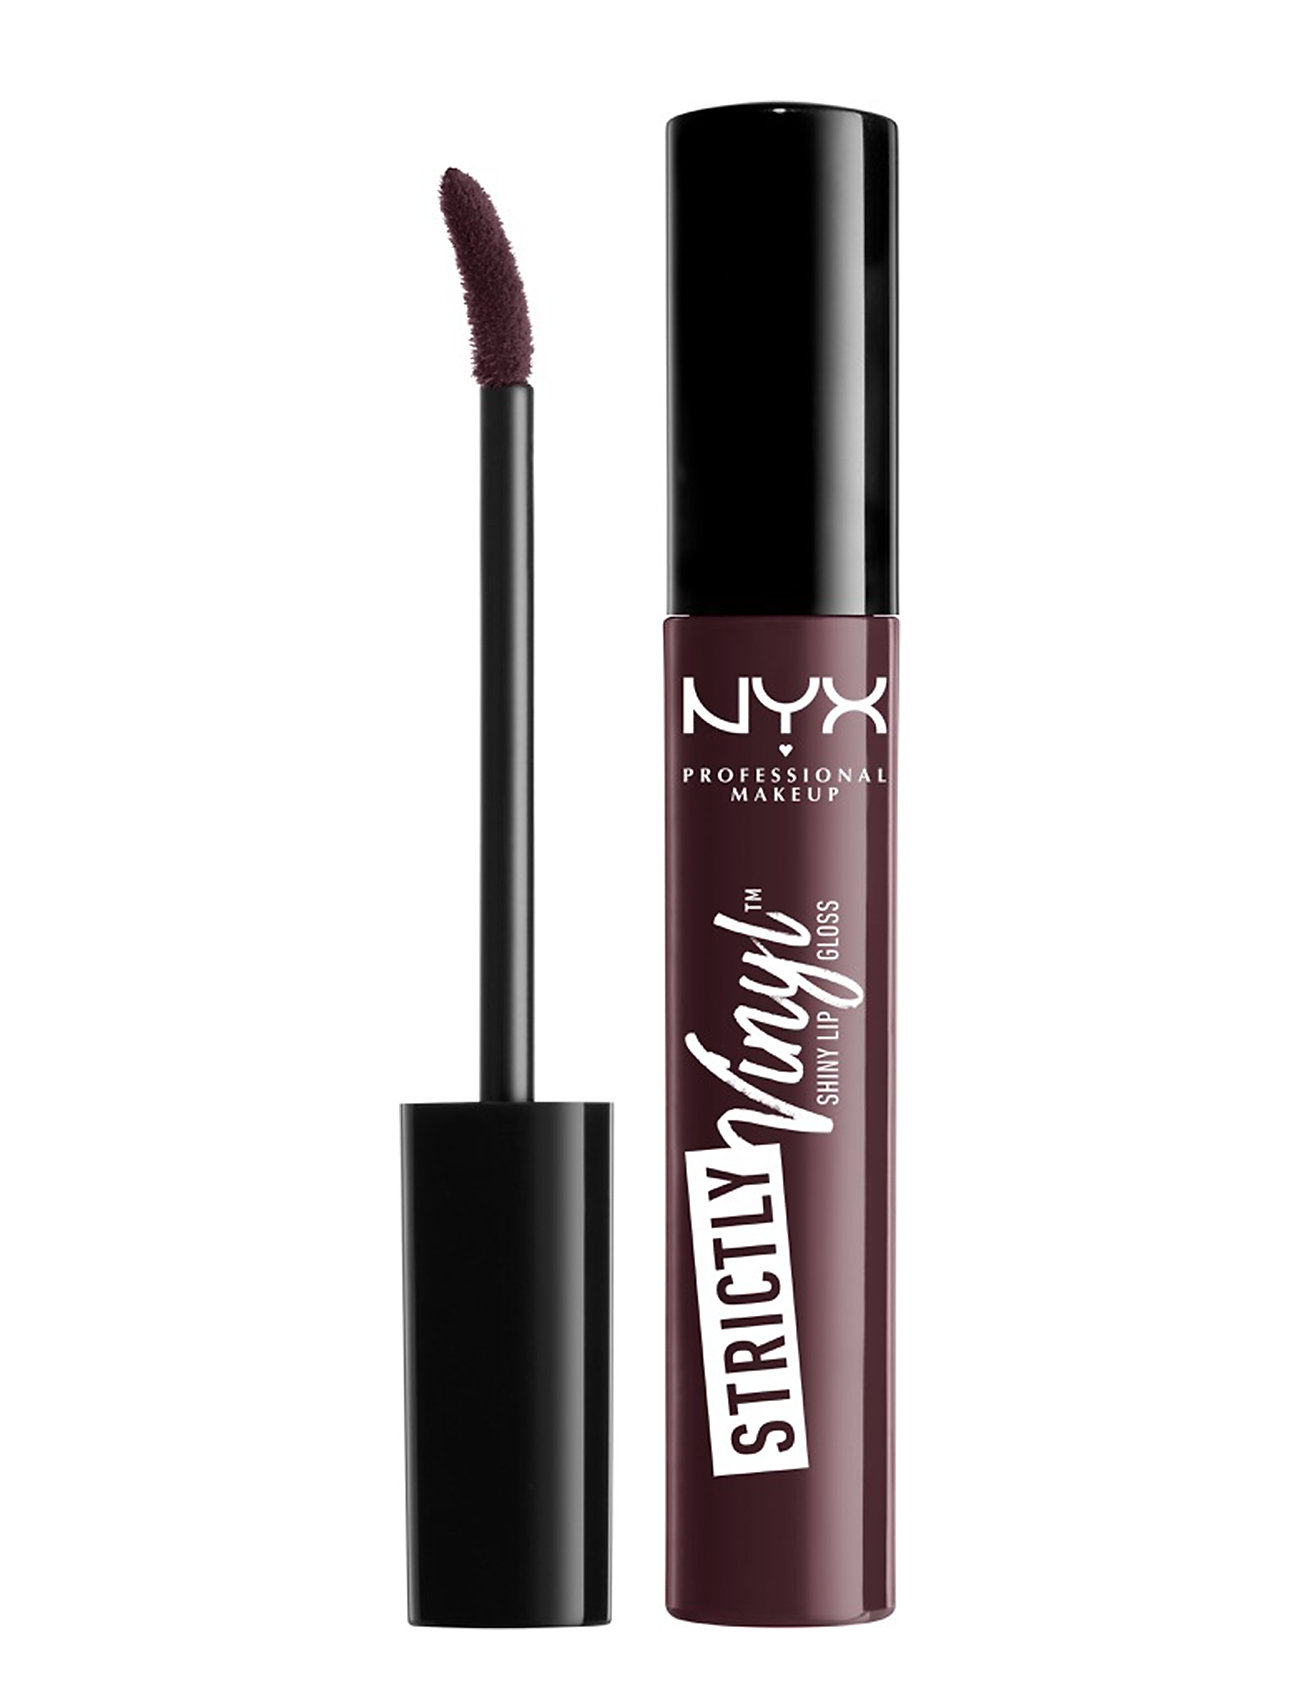 Image of Strictly Vinyl Lip Gloss Lipgloss Makeup Lilla NYX PROFESSIONAL MAKEUP (3158632775)